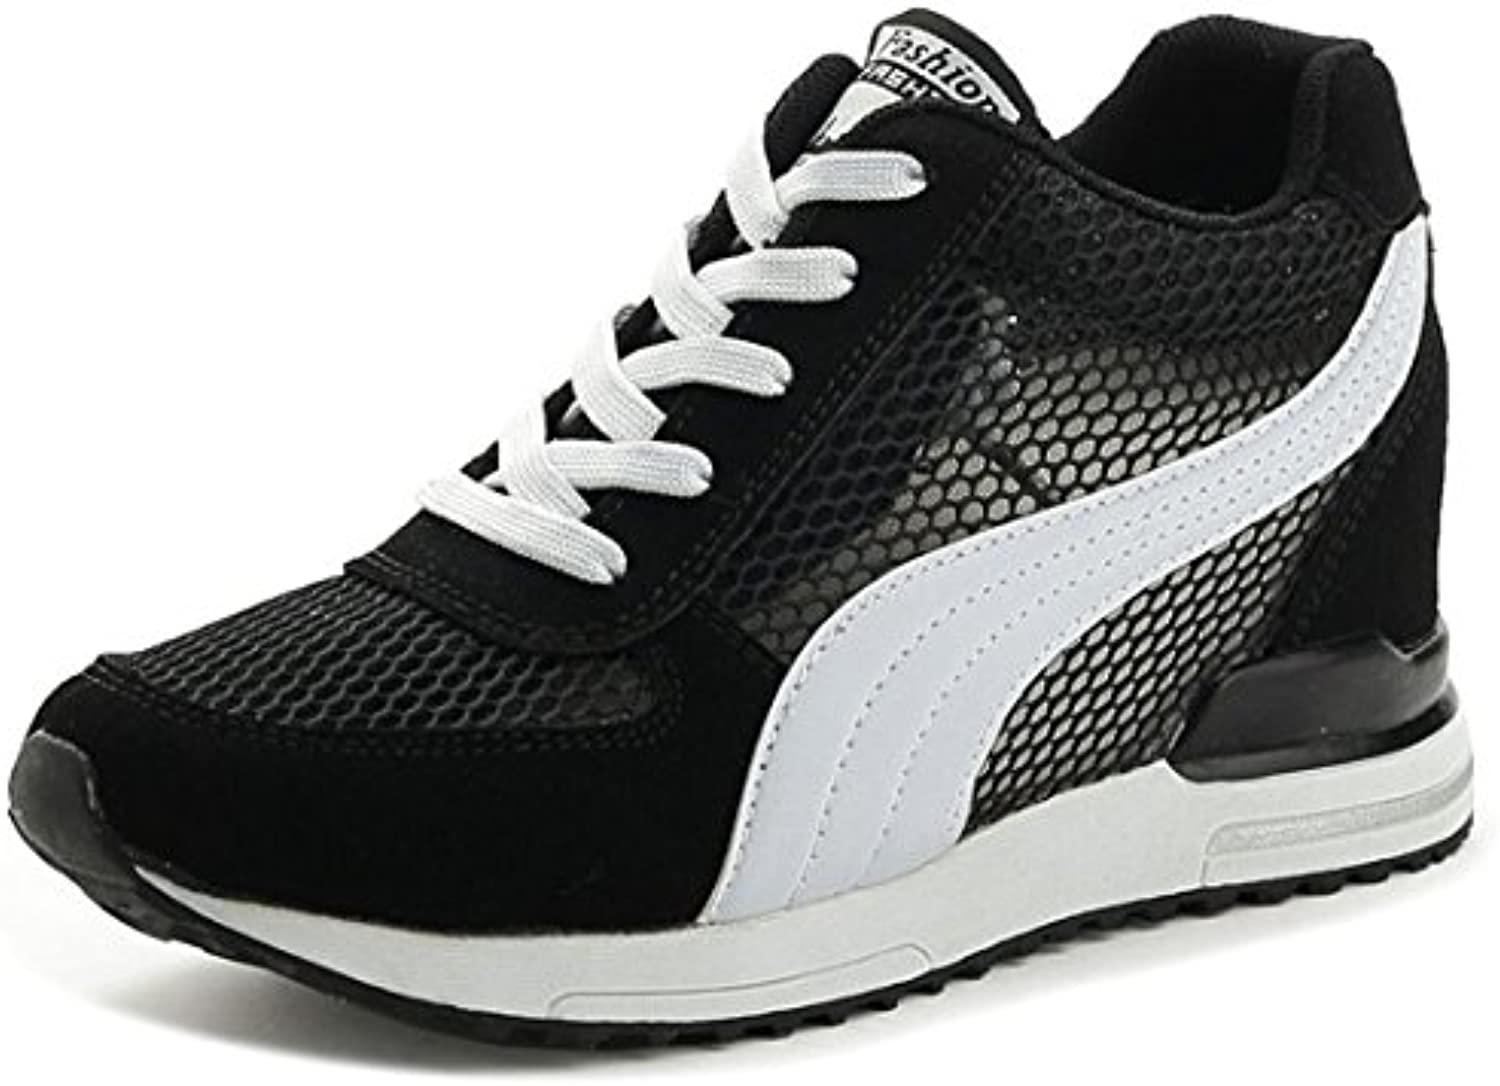 DANDANJIE Zapatos de Mujer Summer New Breathable Mesh Casual Sports Shoes Antideslizante Heightening Zapatos al...